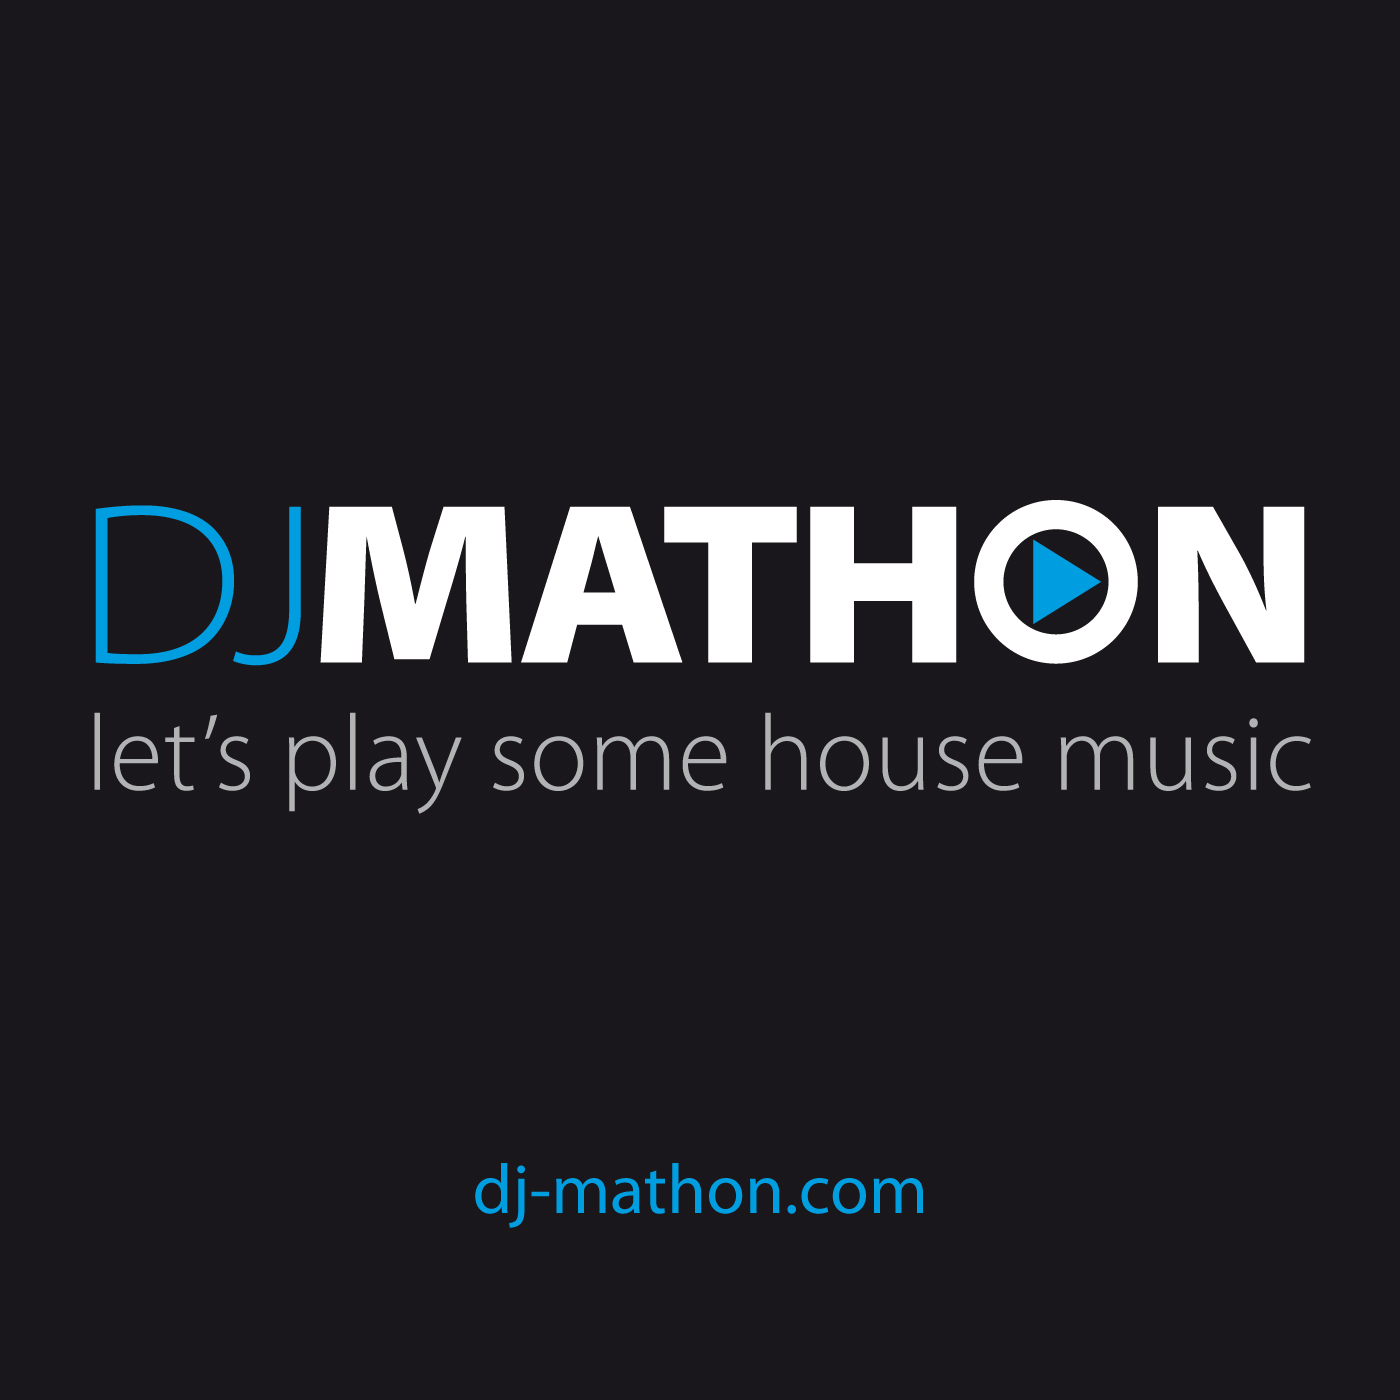 19 DJ MATHON DISCO SHIT